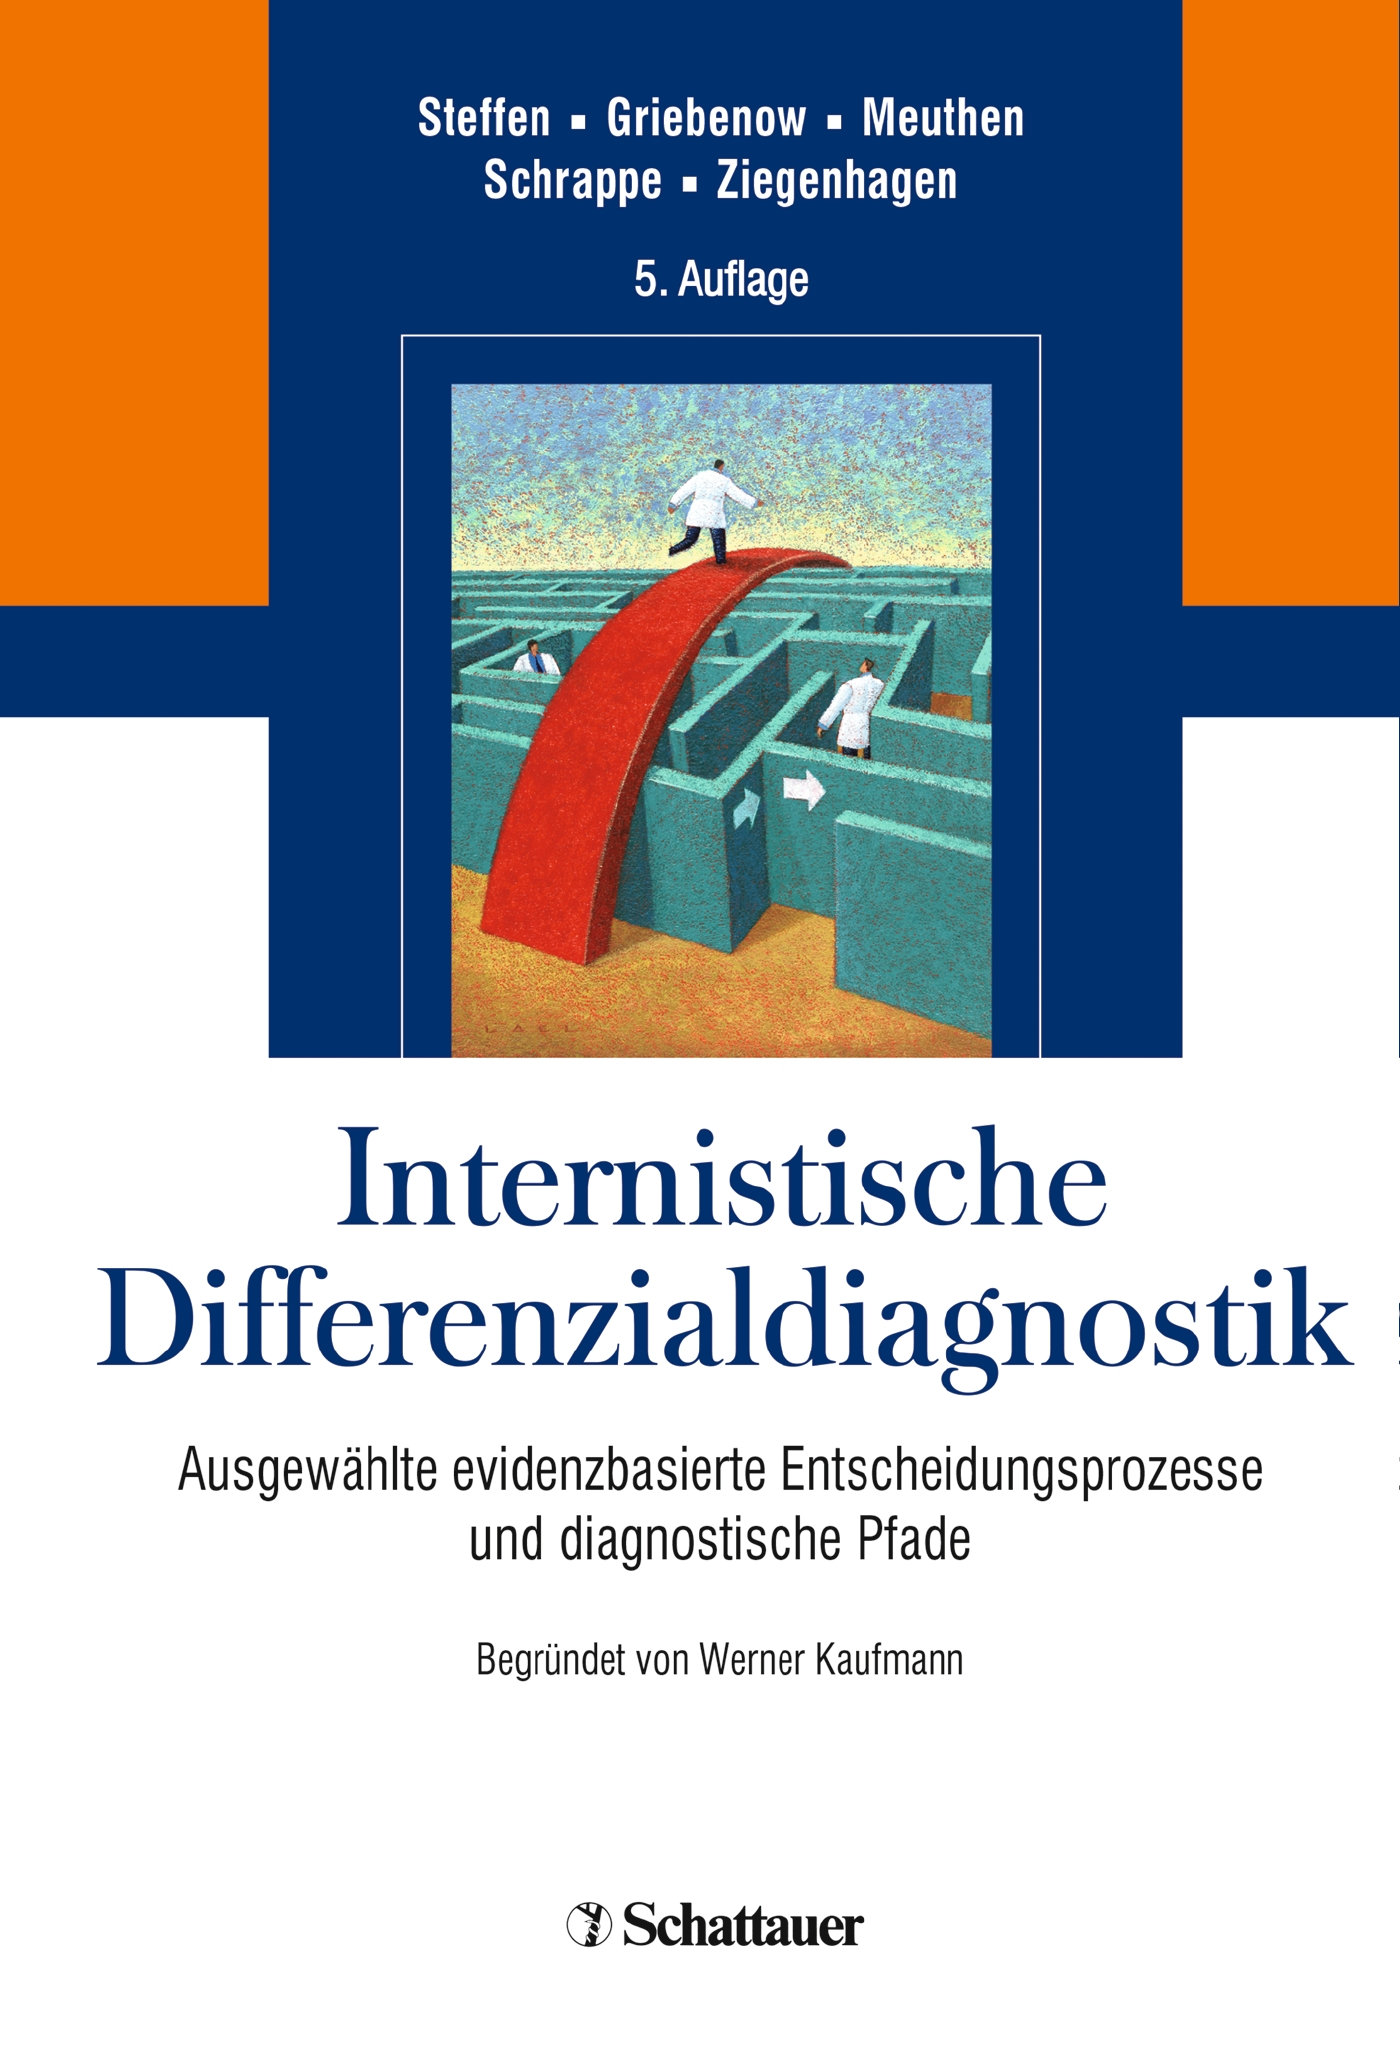 Internistische Differenzialdiagnostik